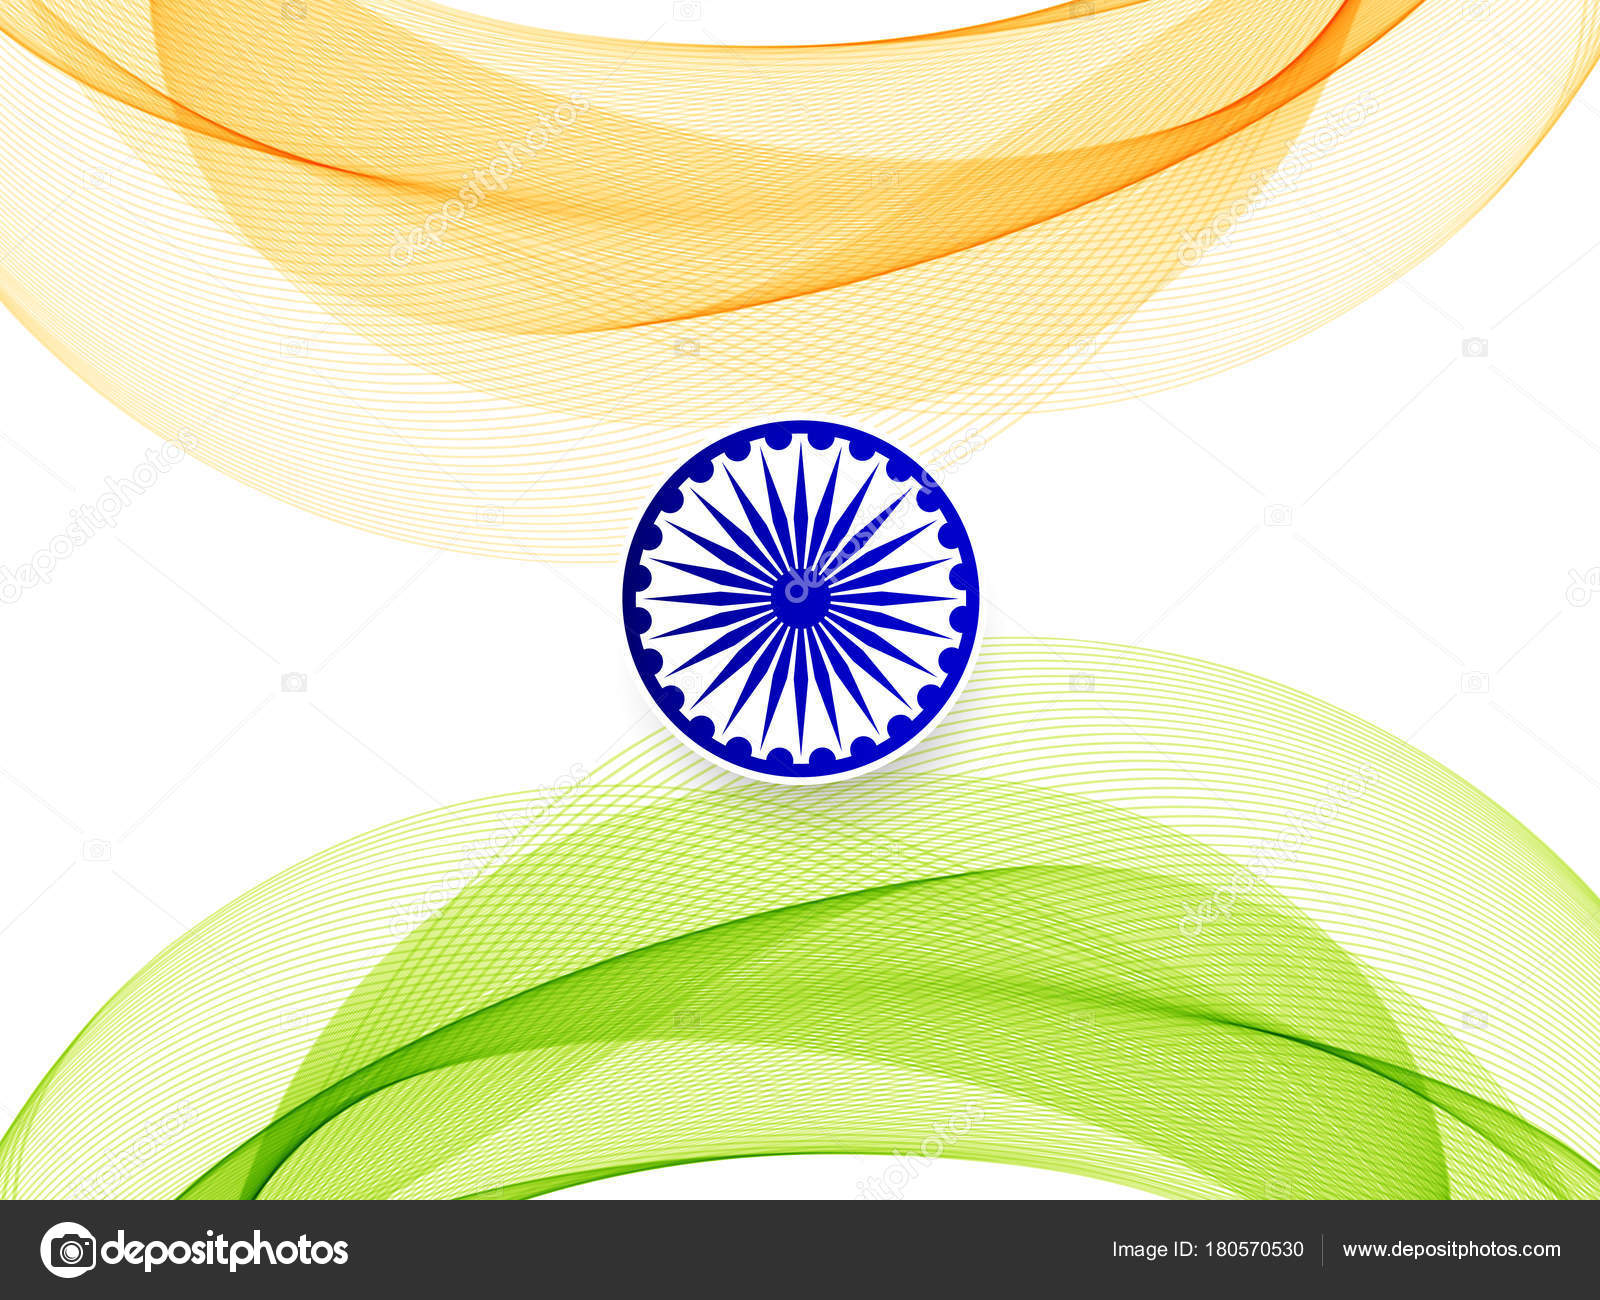 Indian Flag Theme: Abstract Indian Flag Theme Wavy Design Background